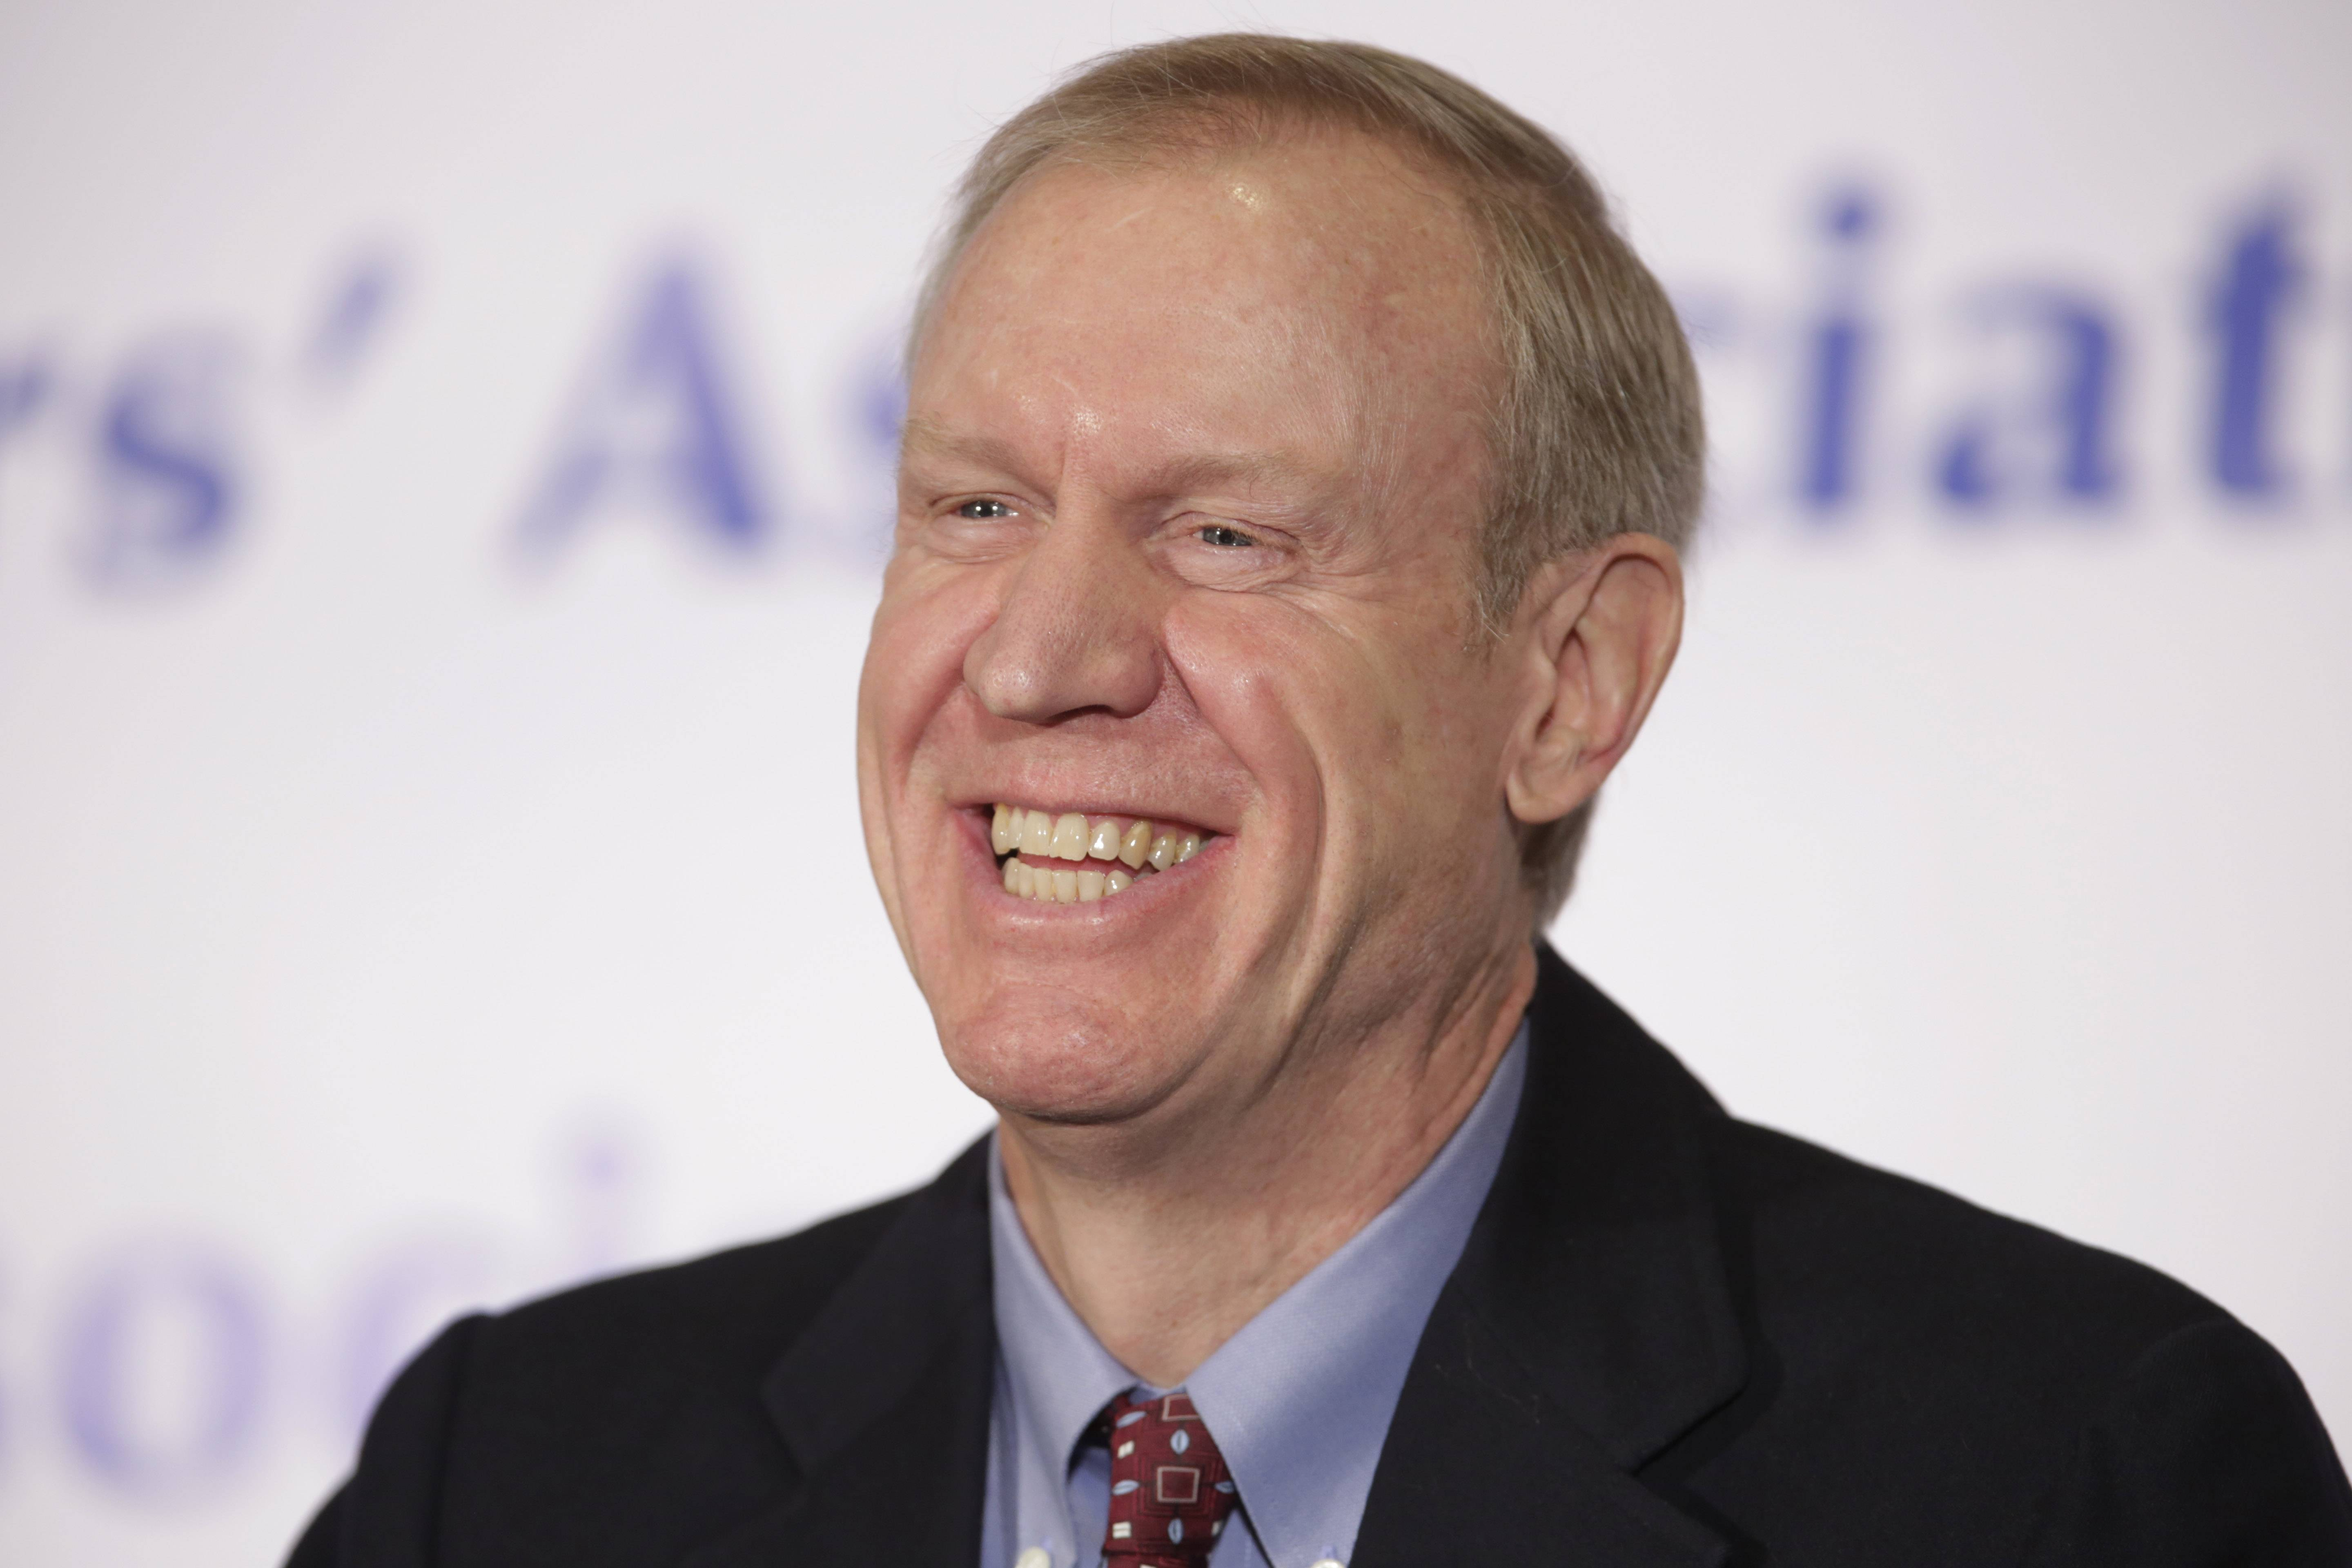 Republican Bruce Rauner's campaign called Gov. Pat Quinn out Friday for hiring issues at IDOT.